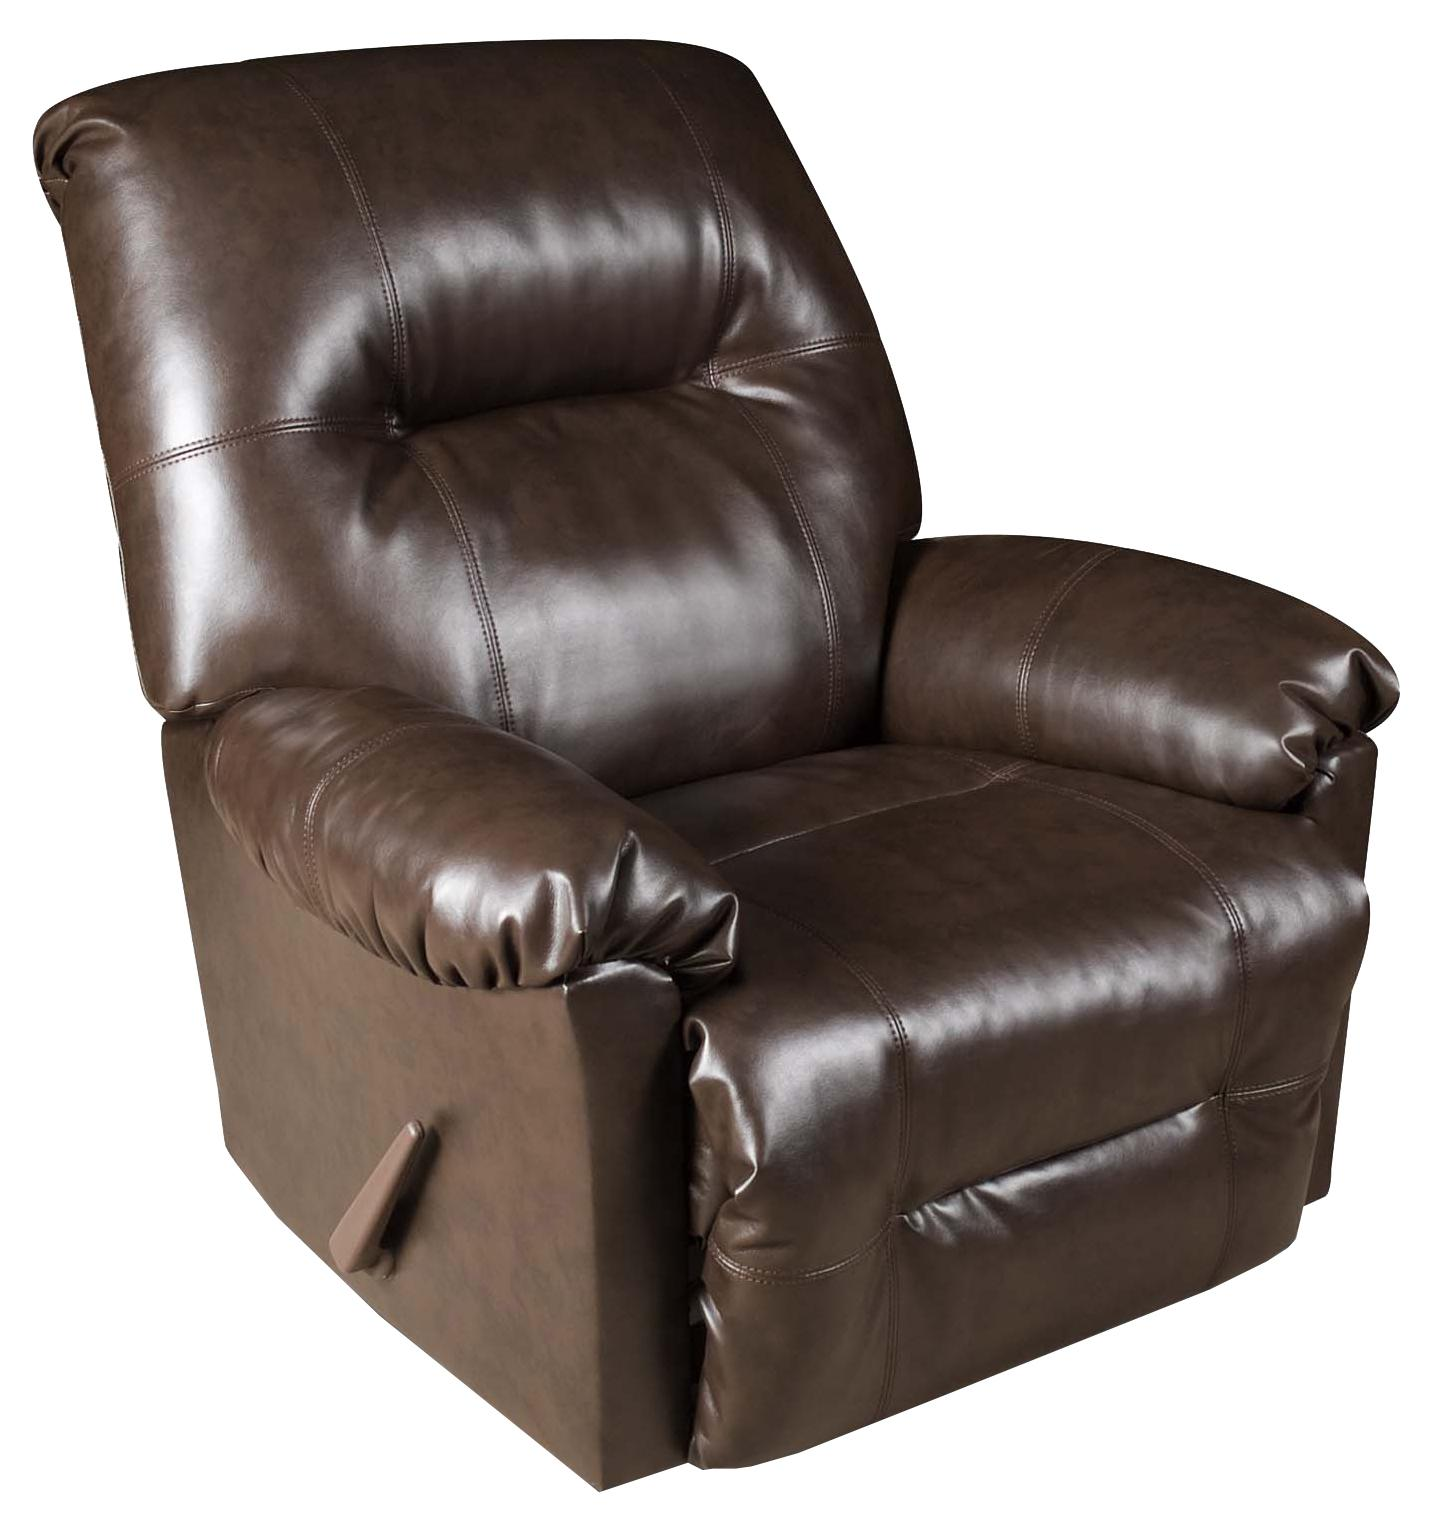 American Furniture Recliners  9350 Recliner - Item Number: 9350 9075